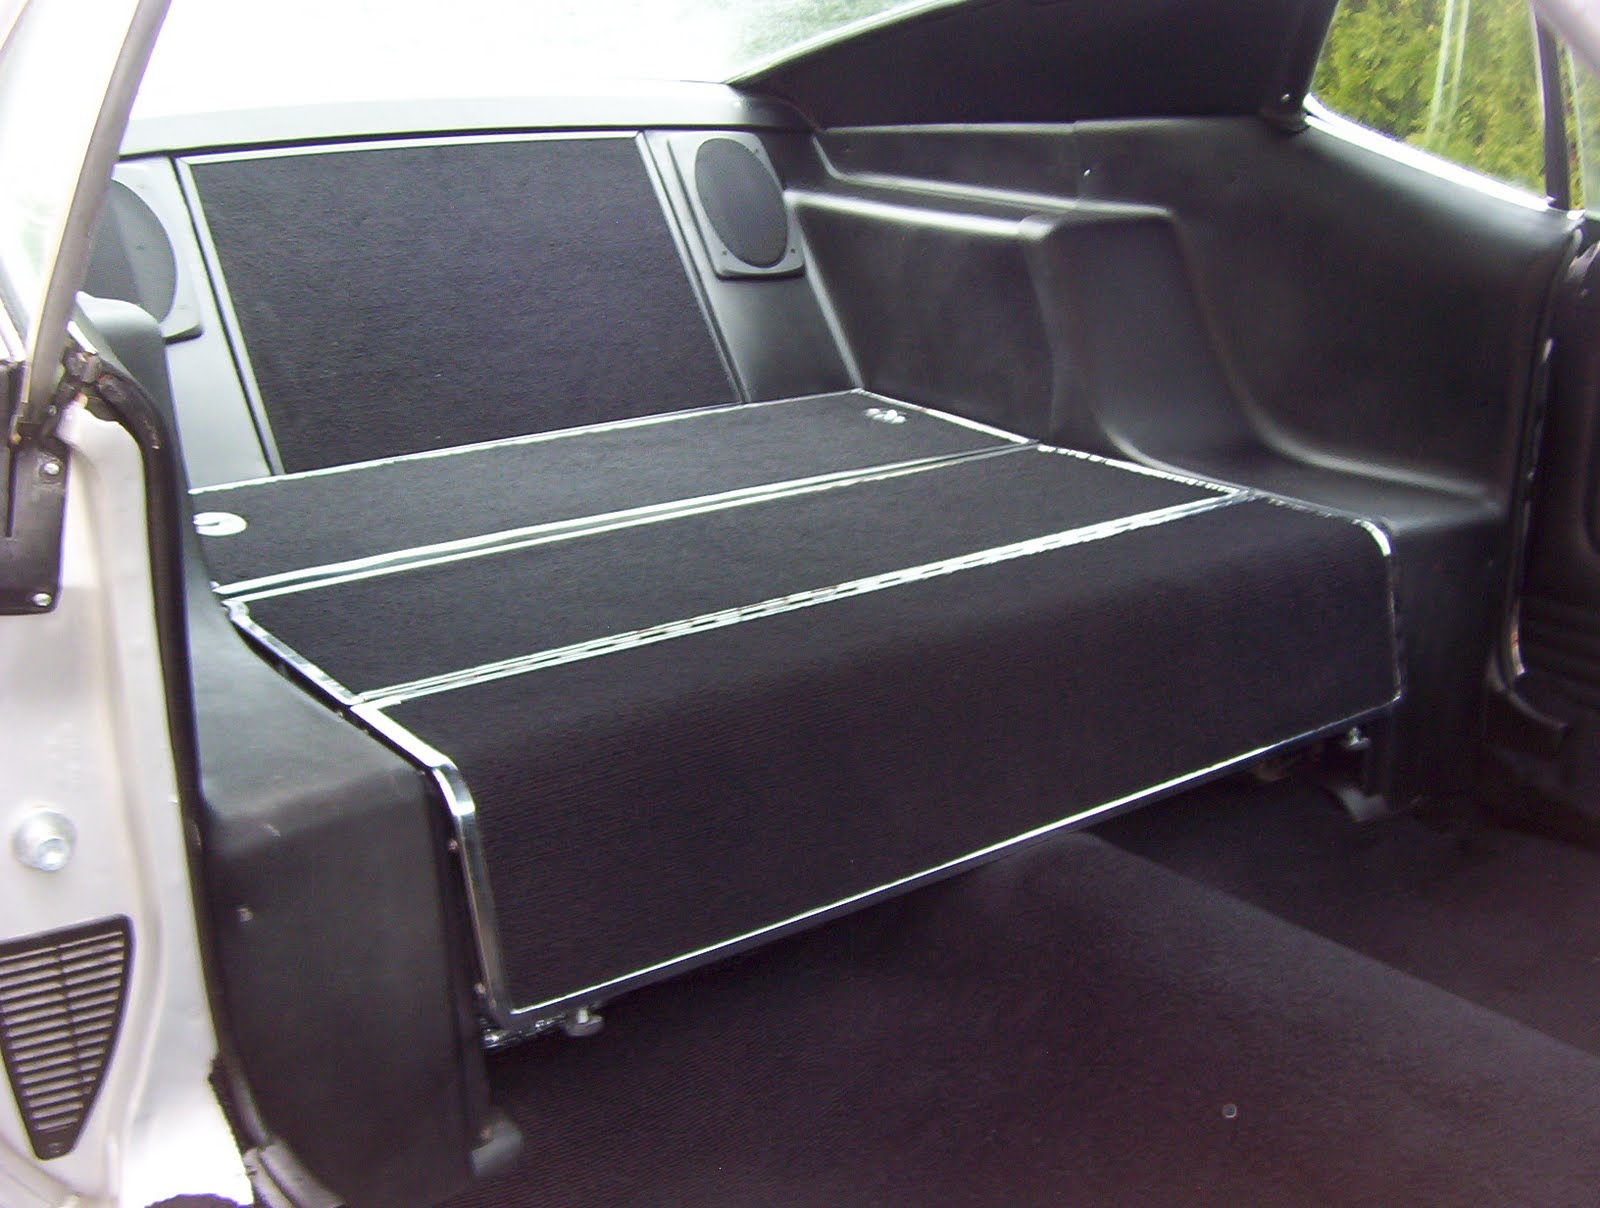 1972 Eleanor Mustang: Sound Deadening Pads, Insulation